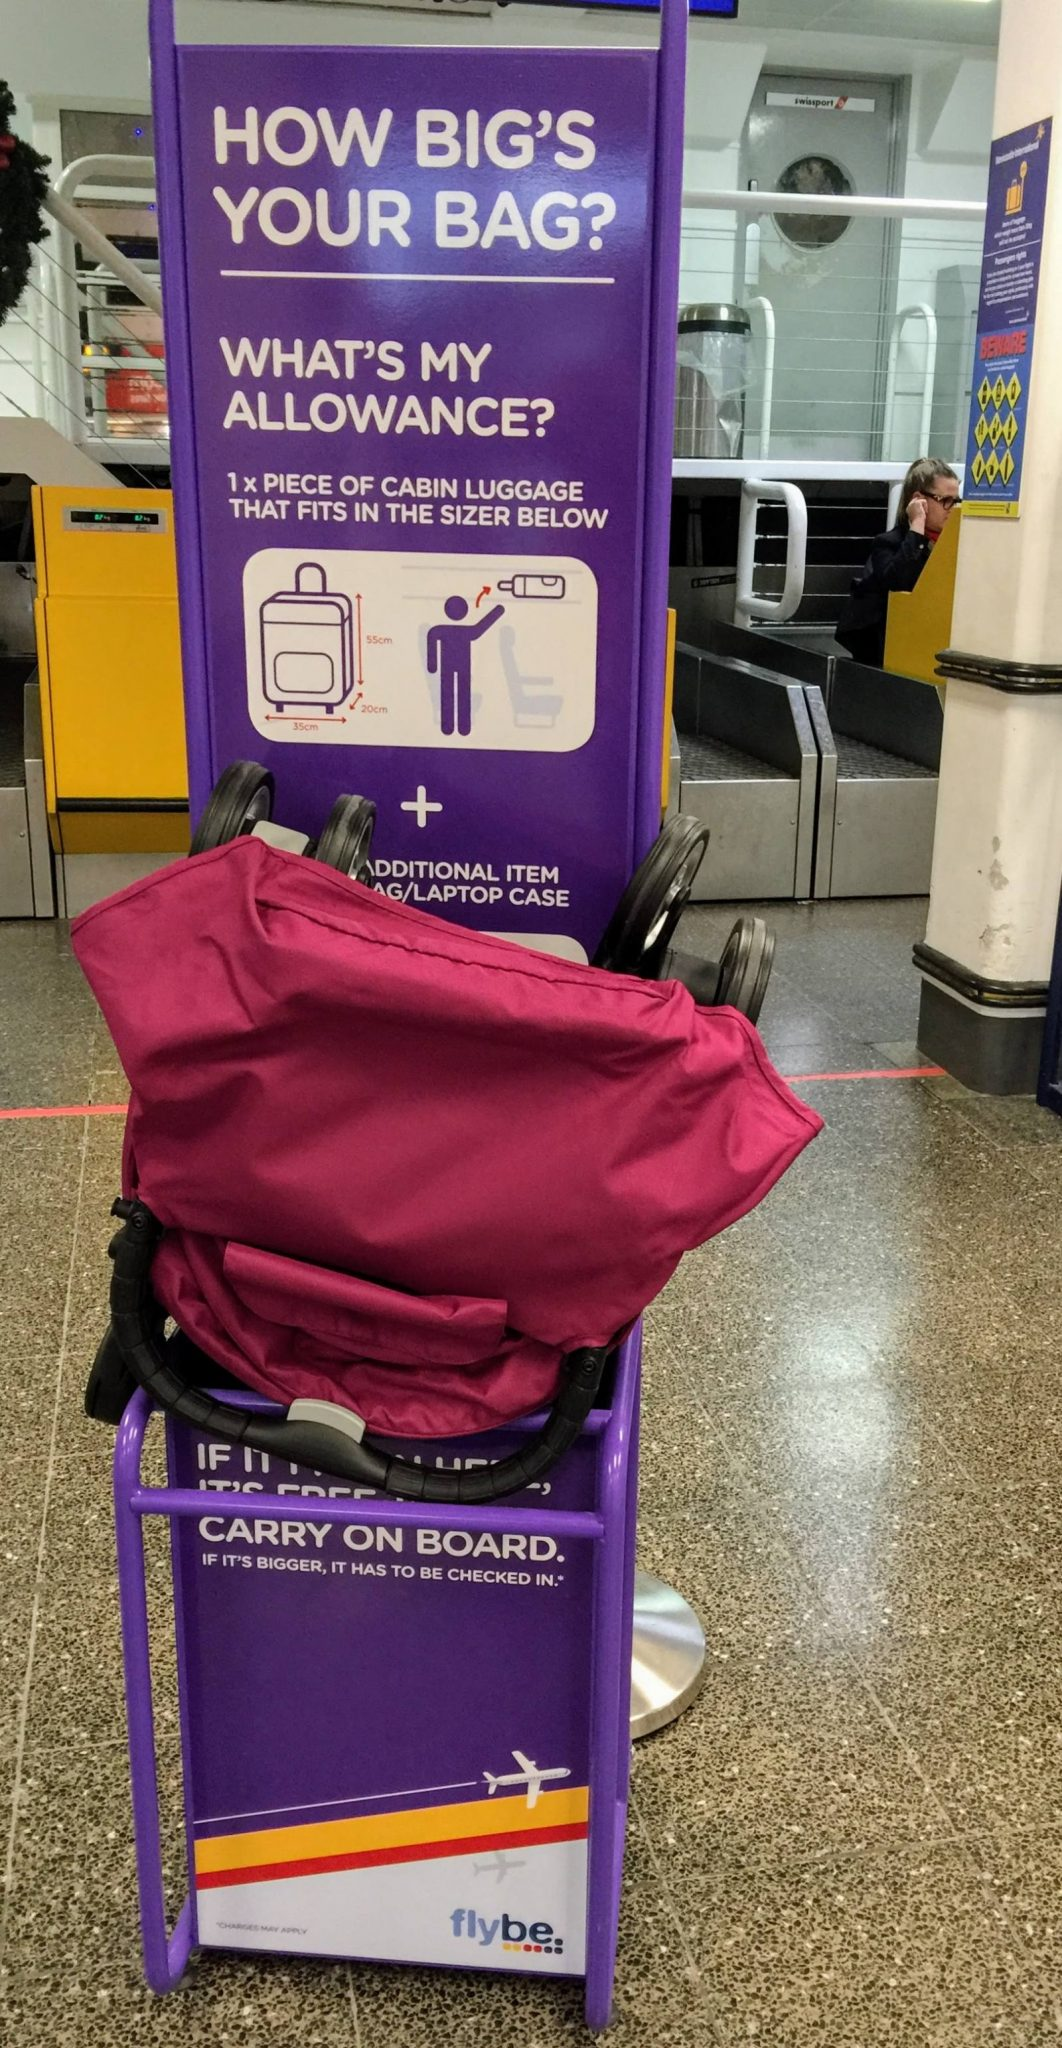 Baby jogger city tour can i take it on the plane for Cabin bag weight limit emirates